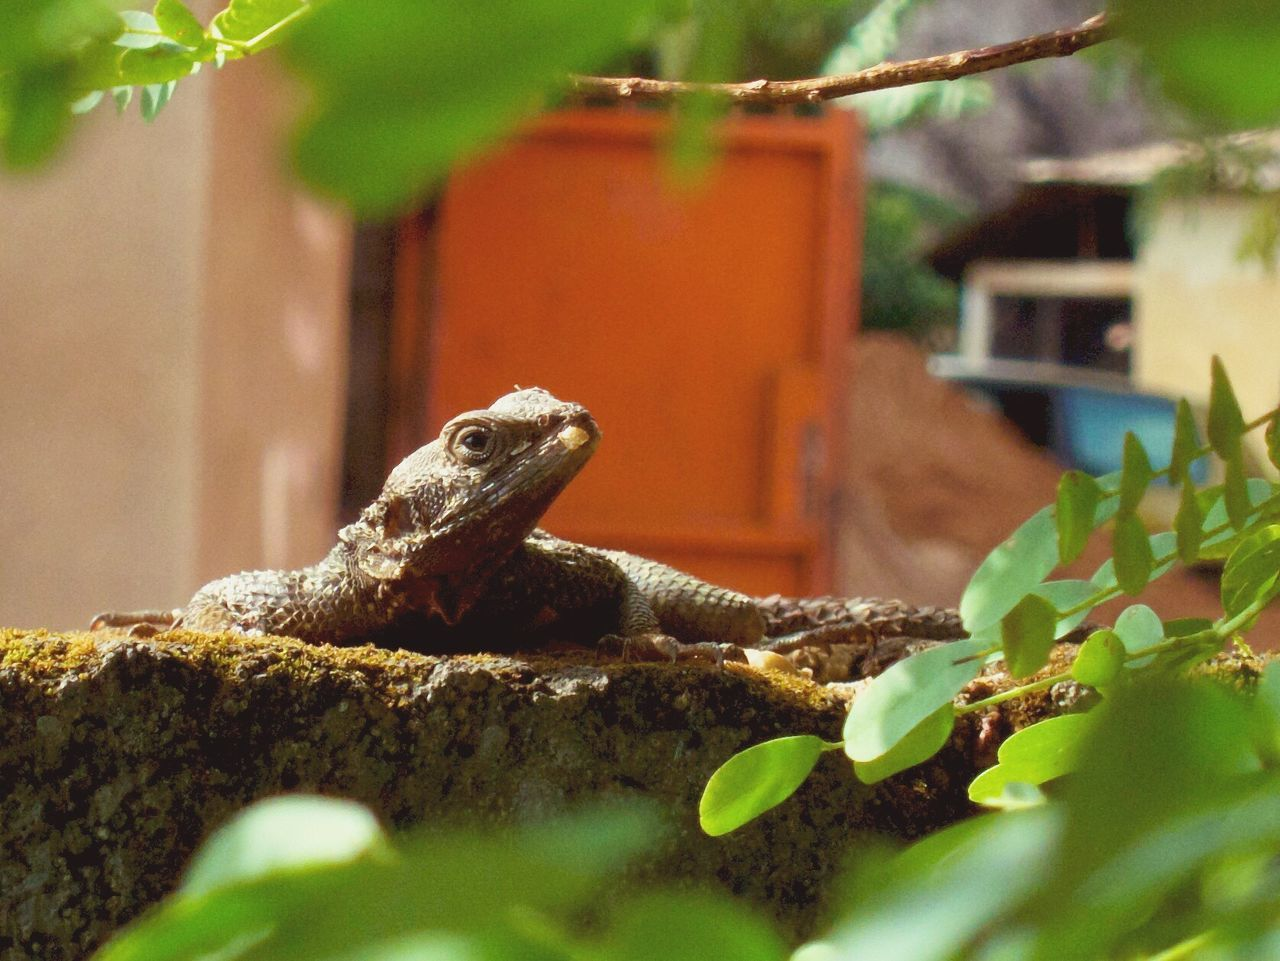 One Animal Animal Themes Animals In The Wild Animal Wildlife Reptile Bearded Dragon Lizard No People Day Outdoors Nature Close-up